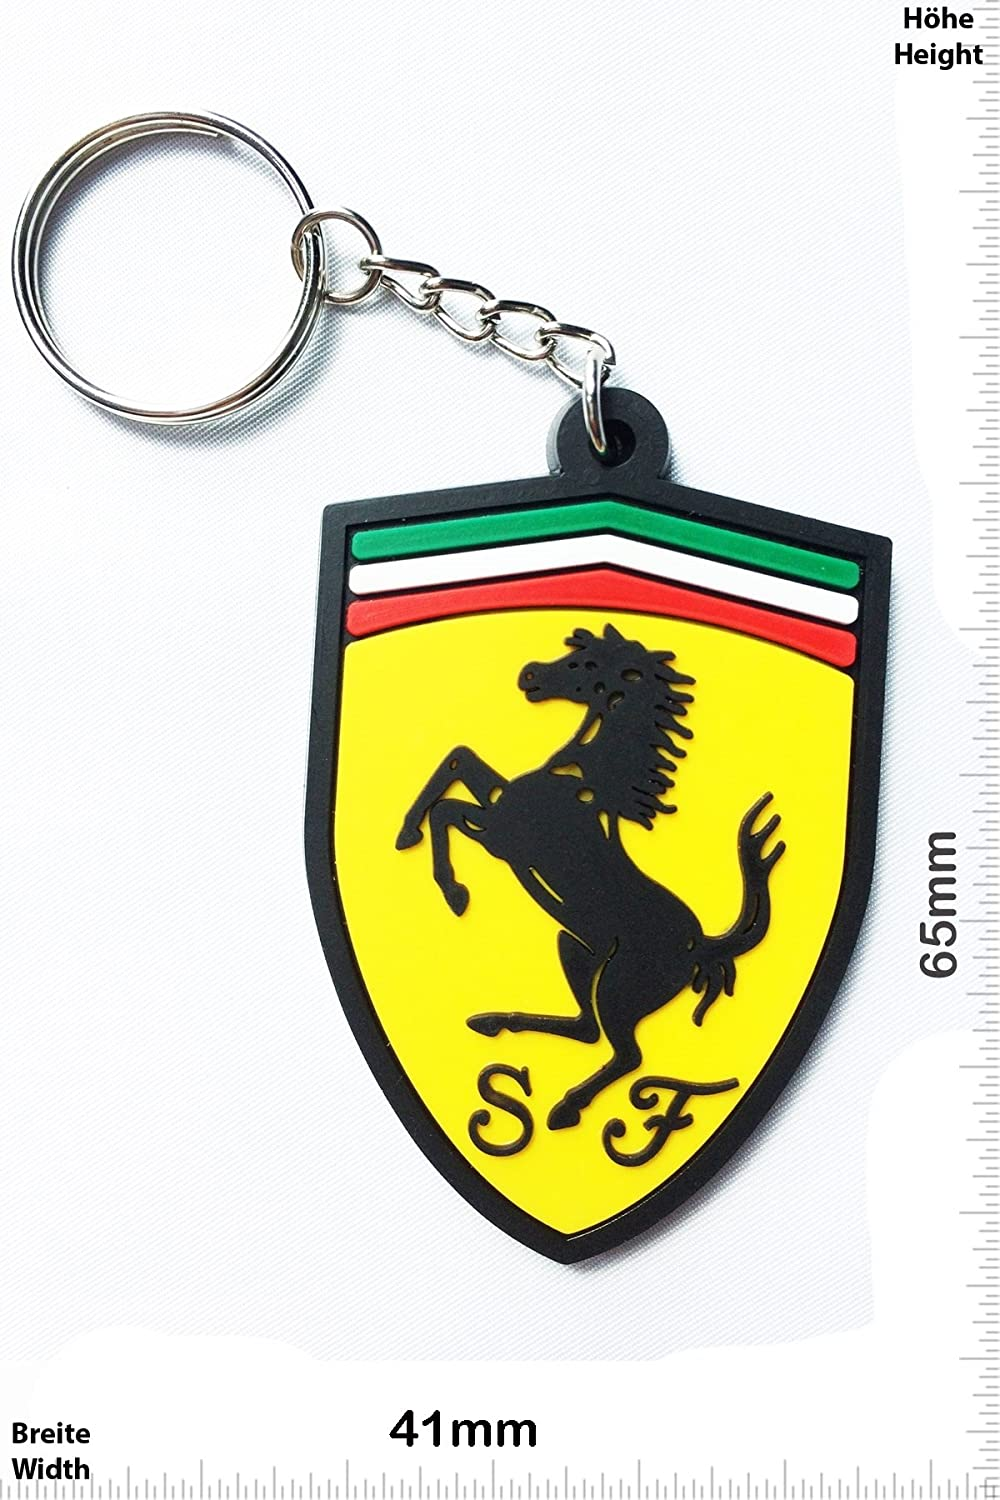 Keychains Porte-clés - Ferrari - Car - sports car - Key Ring - Kautschuk Rrubber Keyring - perfect also bags, wallets or briefcase - Give away